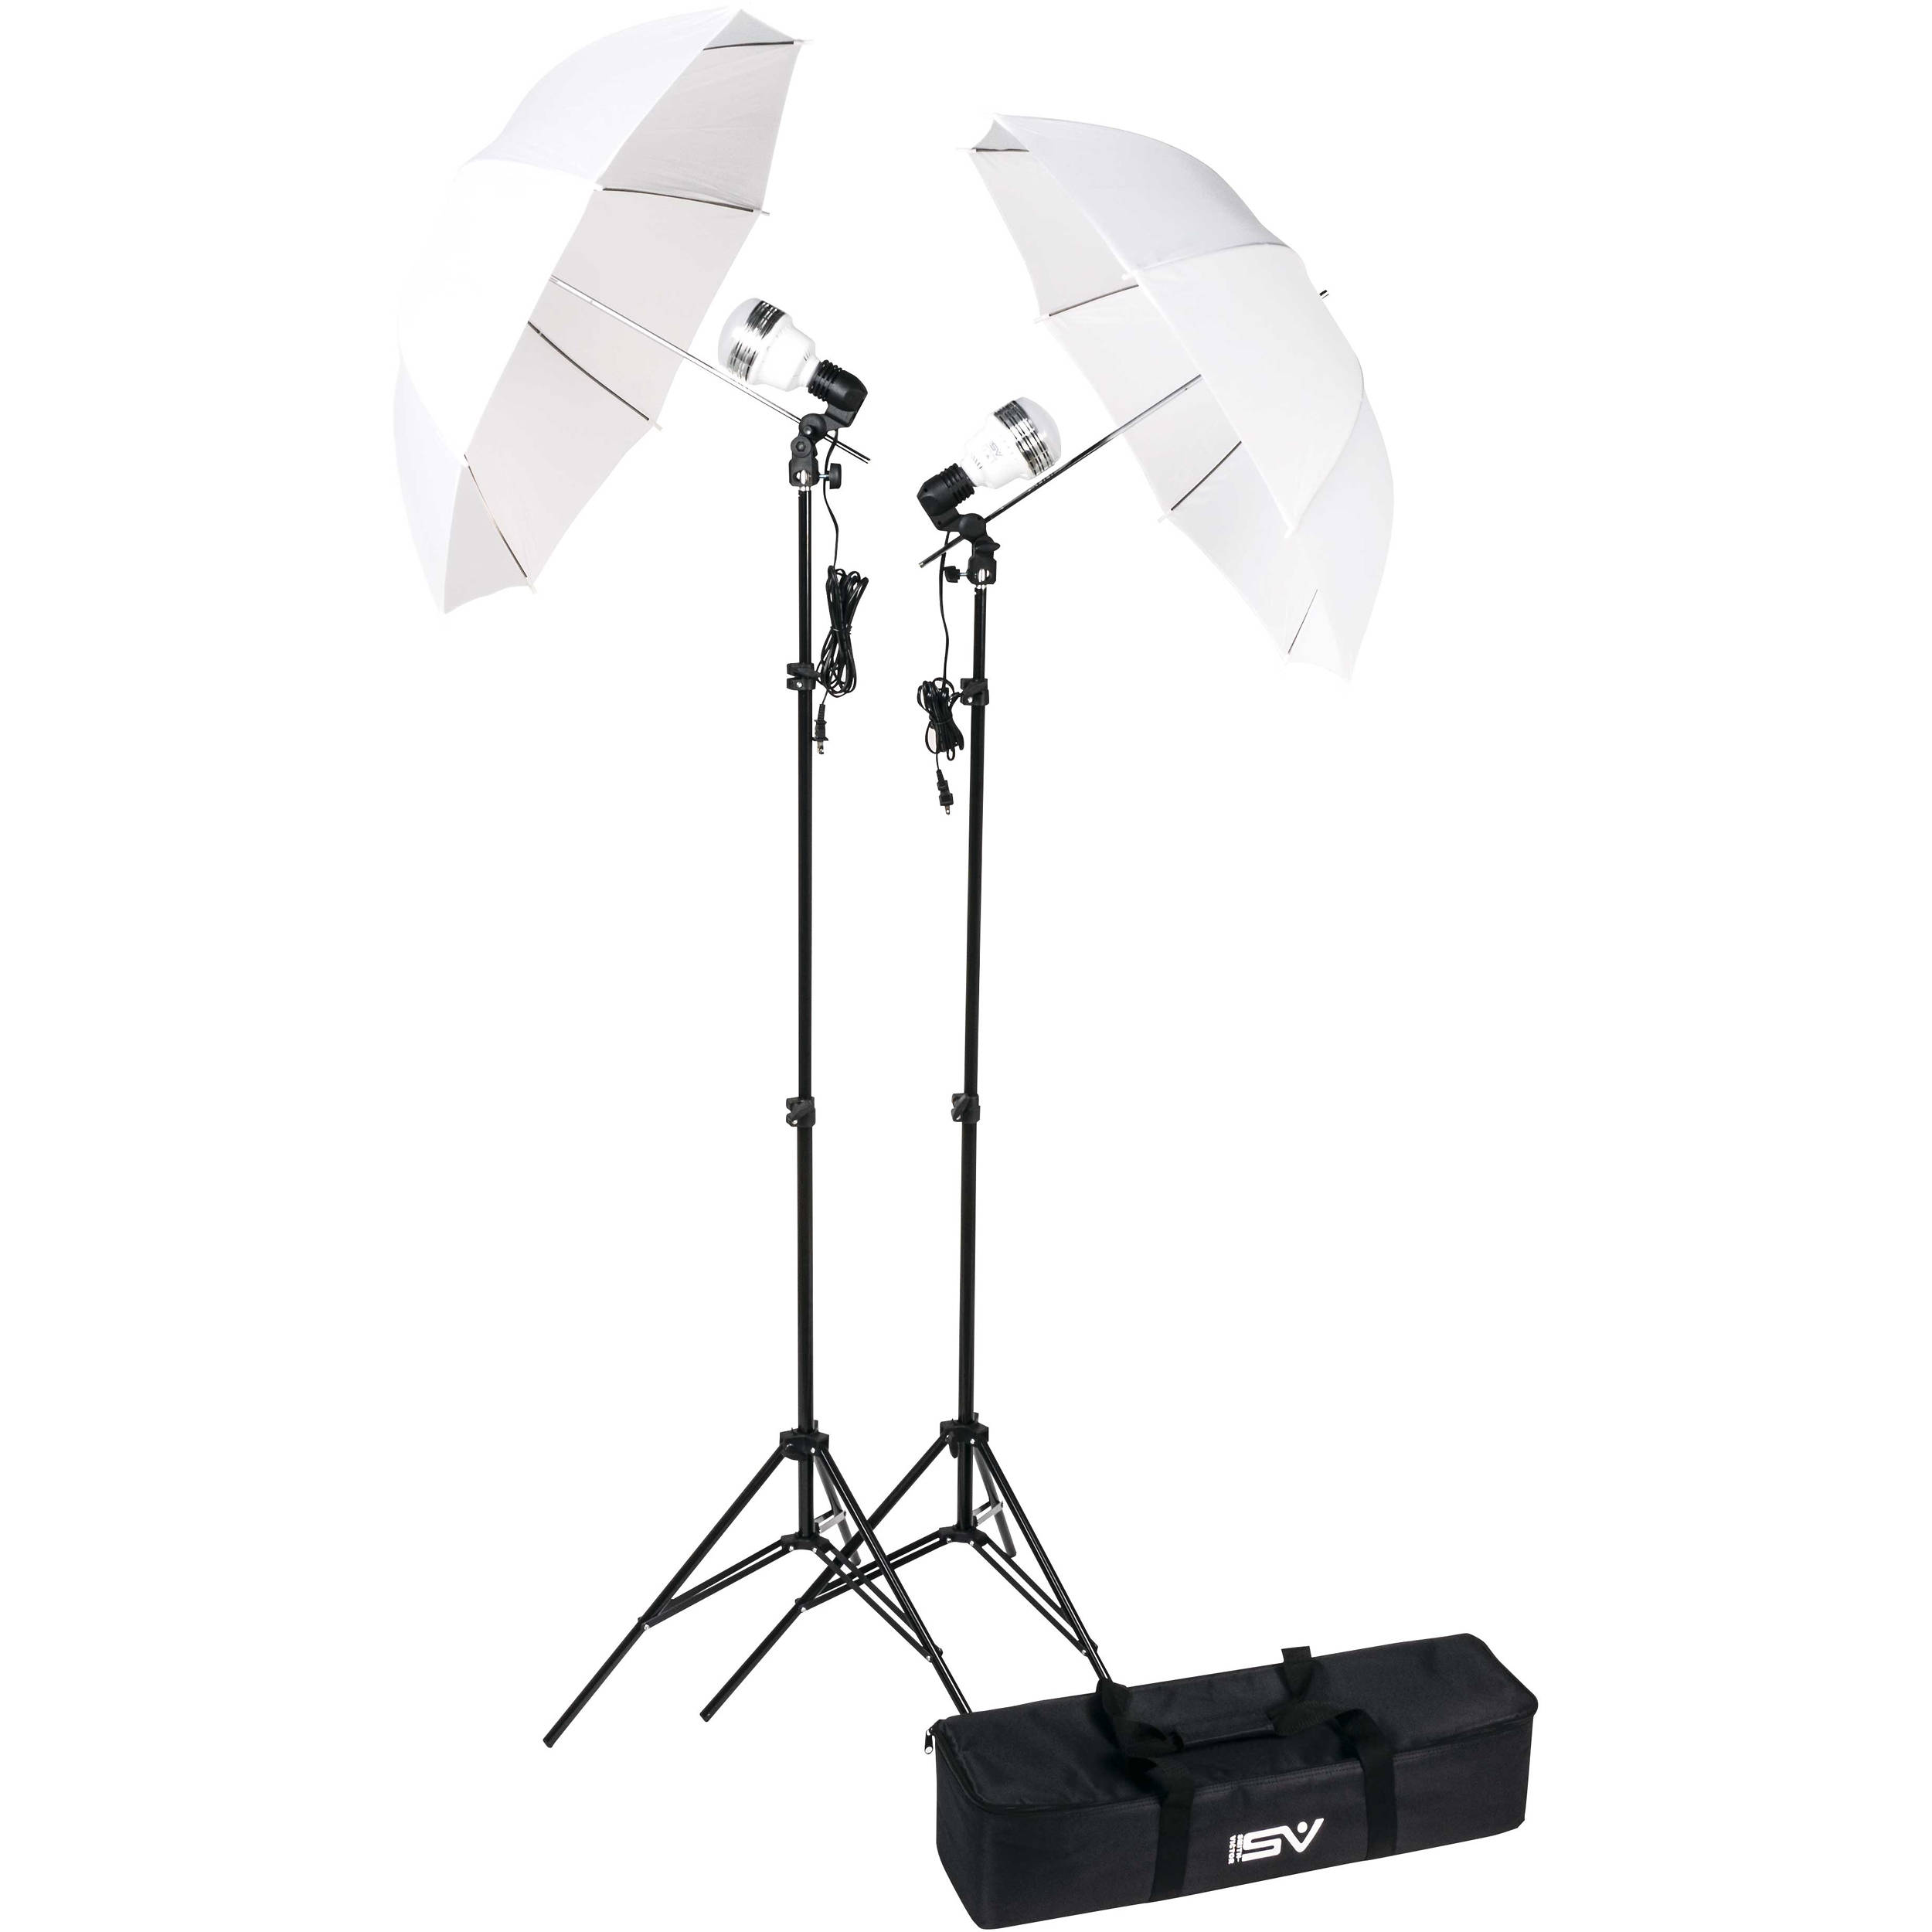 The Fundamentals Of Wedding Videography For Beginners Bh Explora Led Dance Glove Get Party Started With Your Own Interactive Light Smith Victor Kt750led 2 Umbrella Kit